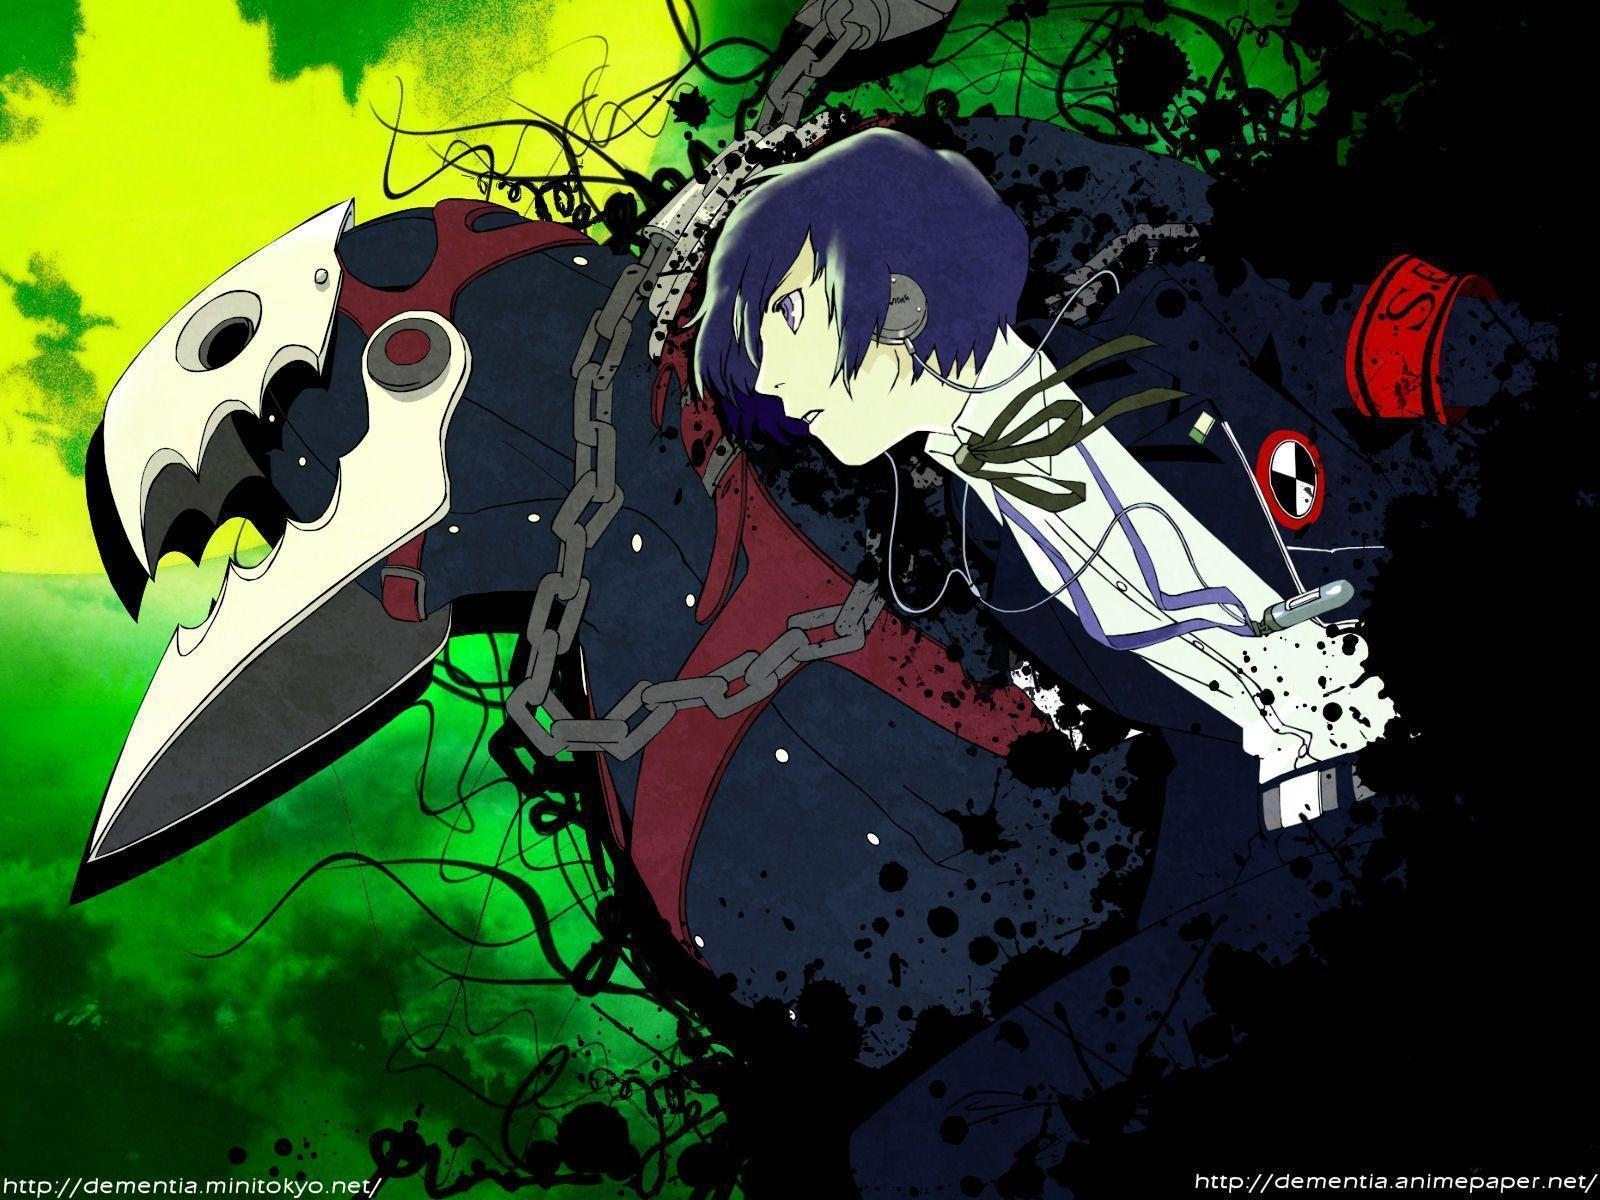 Persona3 Wallpaper 4k Thanatos: Thanatos Wallpapers